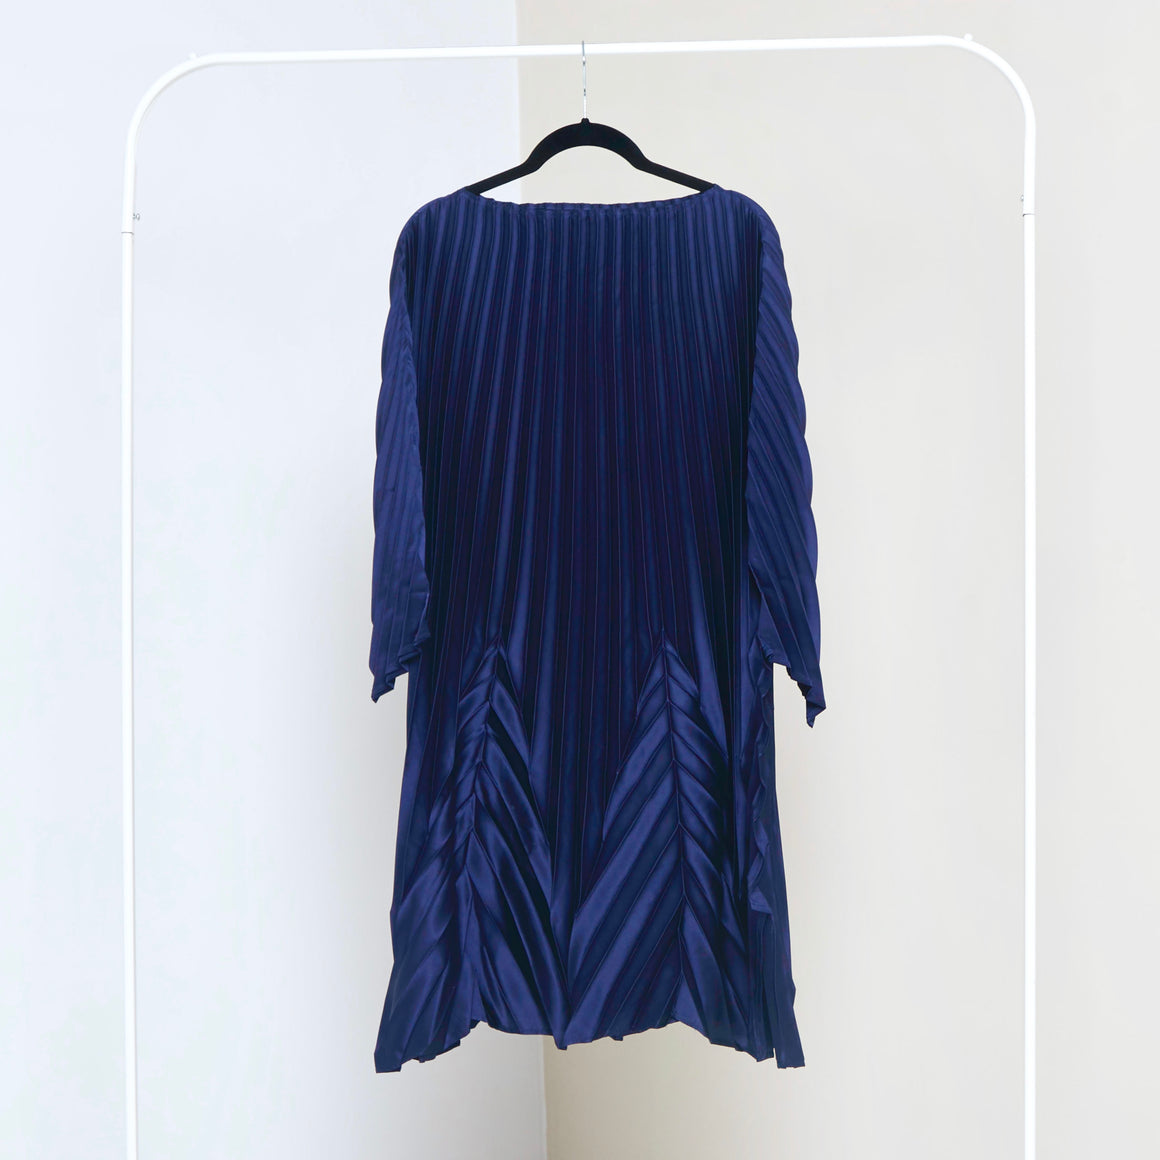 Chevron End Pleats Satin Dress - Midnight Blue